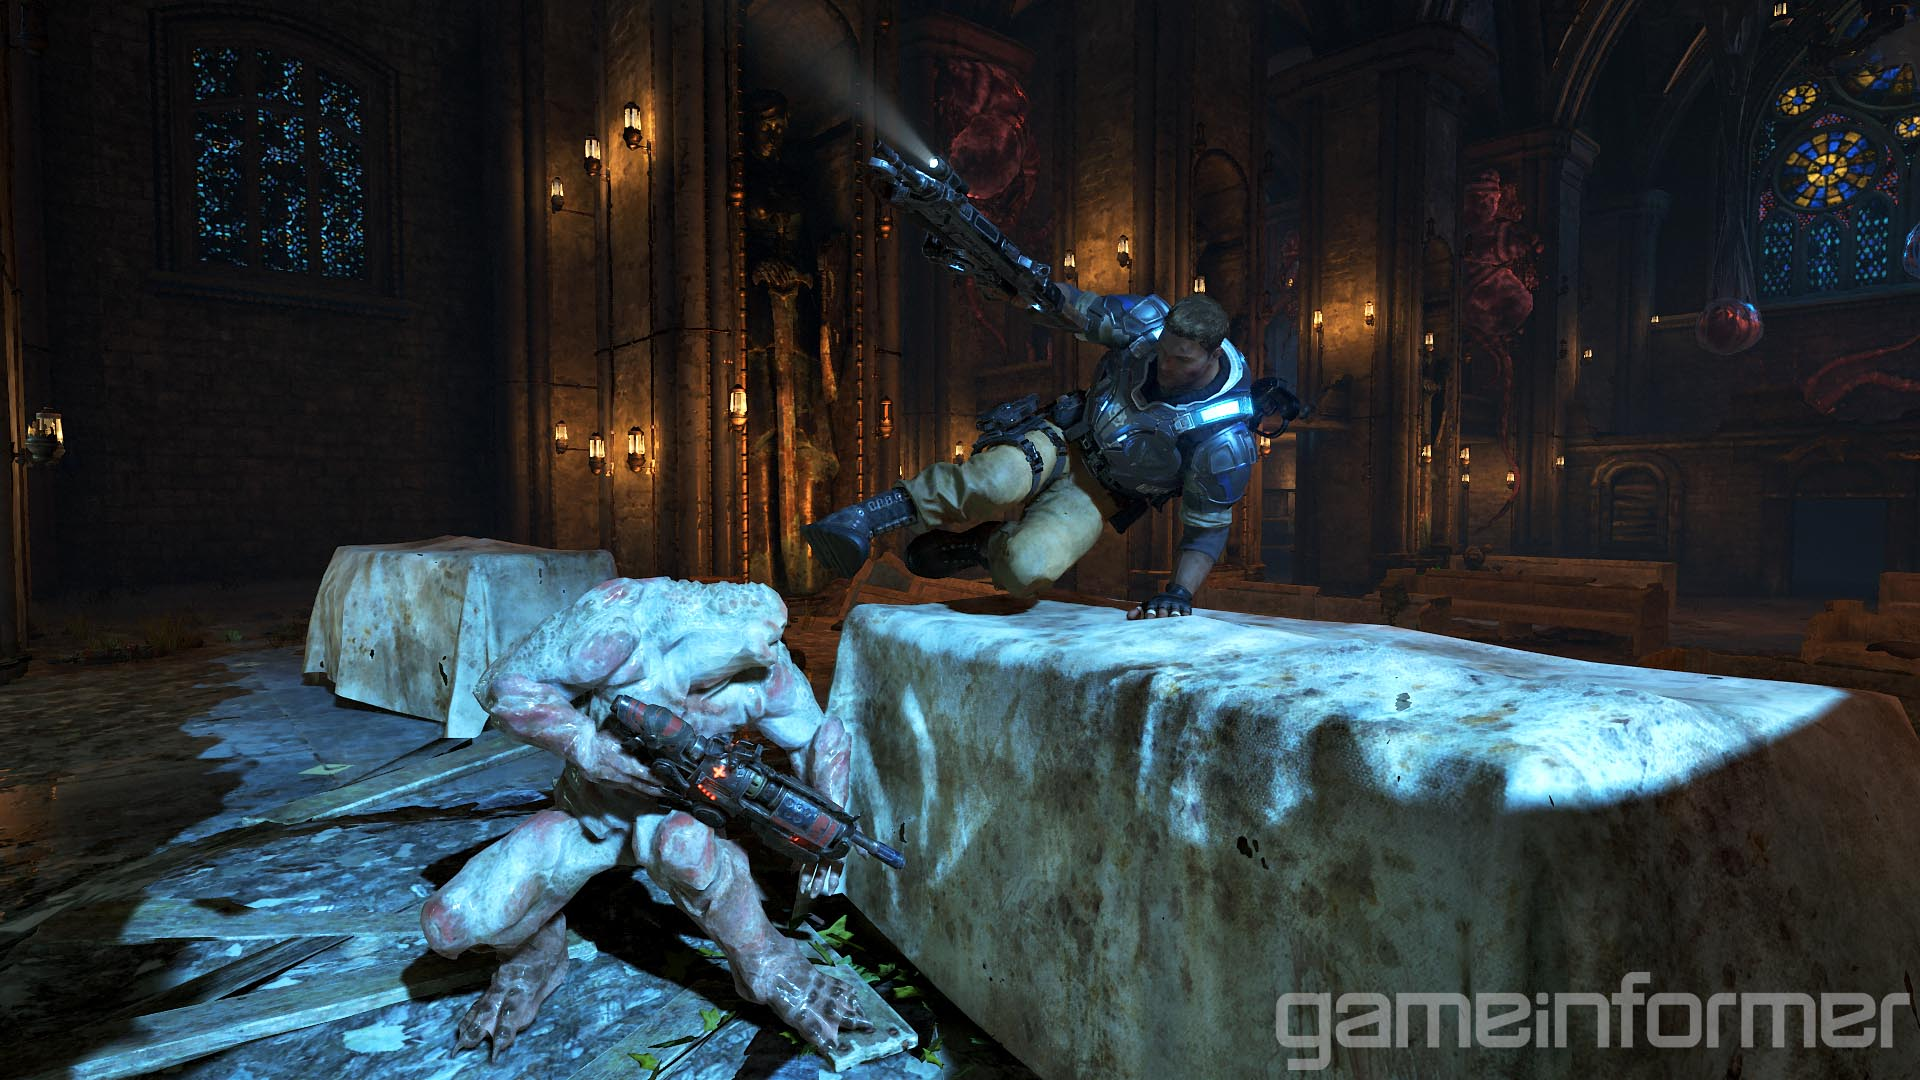 drone games online with Gears War 4 Game Informer Screenshots on Papel De Parede Hd Gratis Para Pc likewise Gears War 4 Game Informer Screenshots moreover Neon Flying Squid Amazing Creatures Soar 100 Feet Air 11 2 Metres PER SECOND furthermore Navy Ship Wallpaper as well Remnant Mgalekgolo.